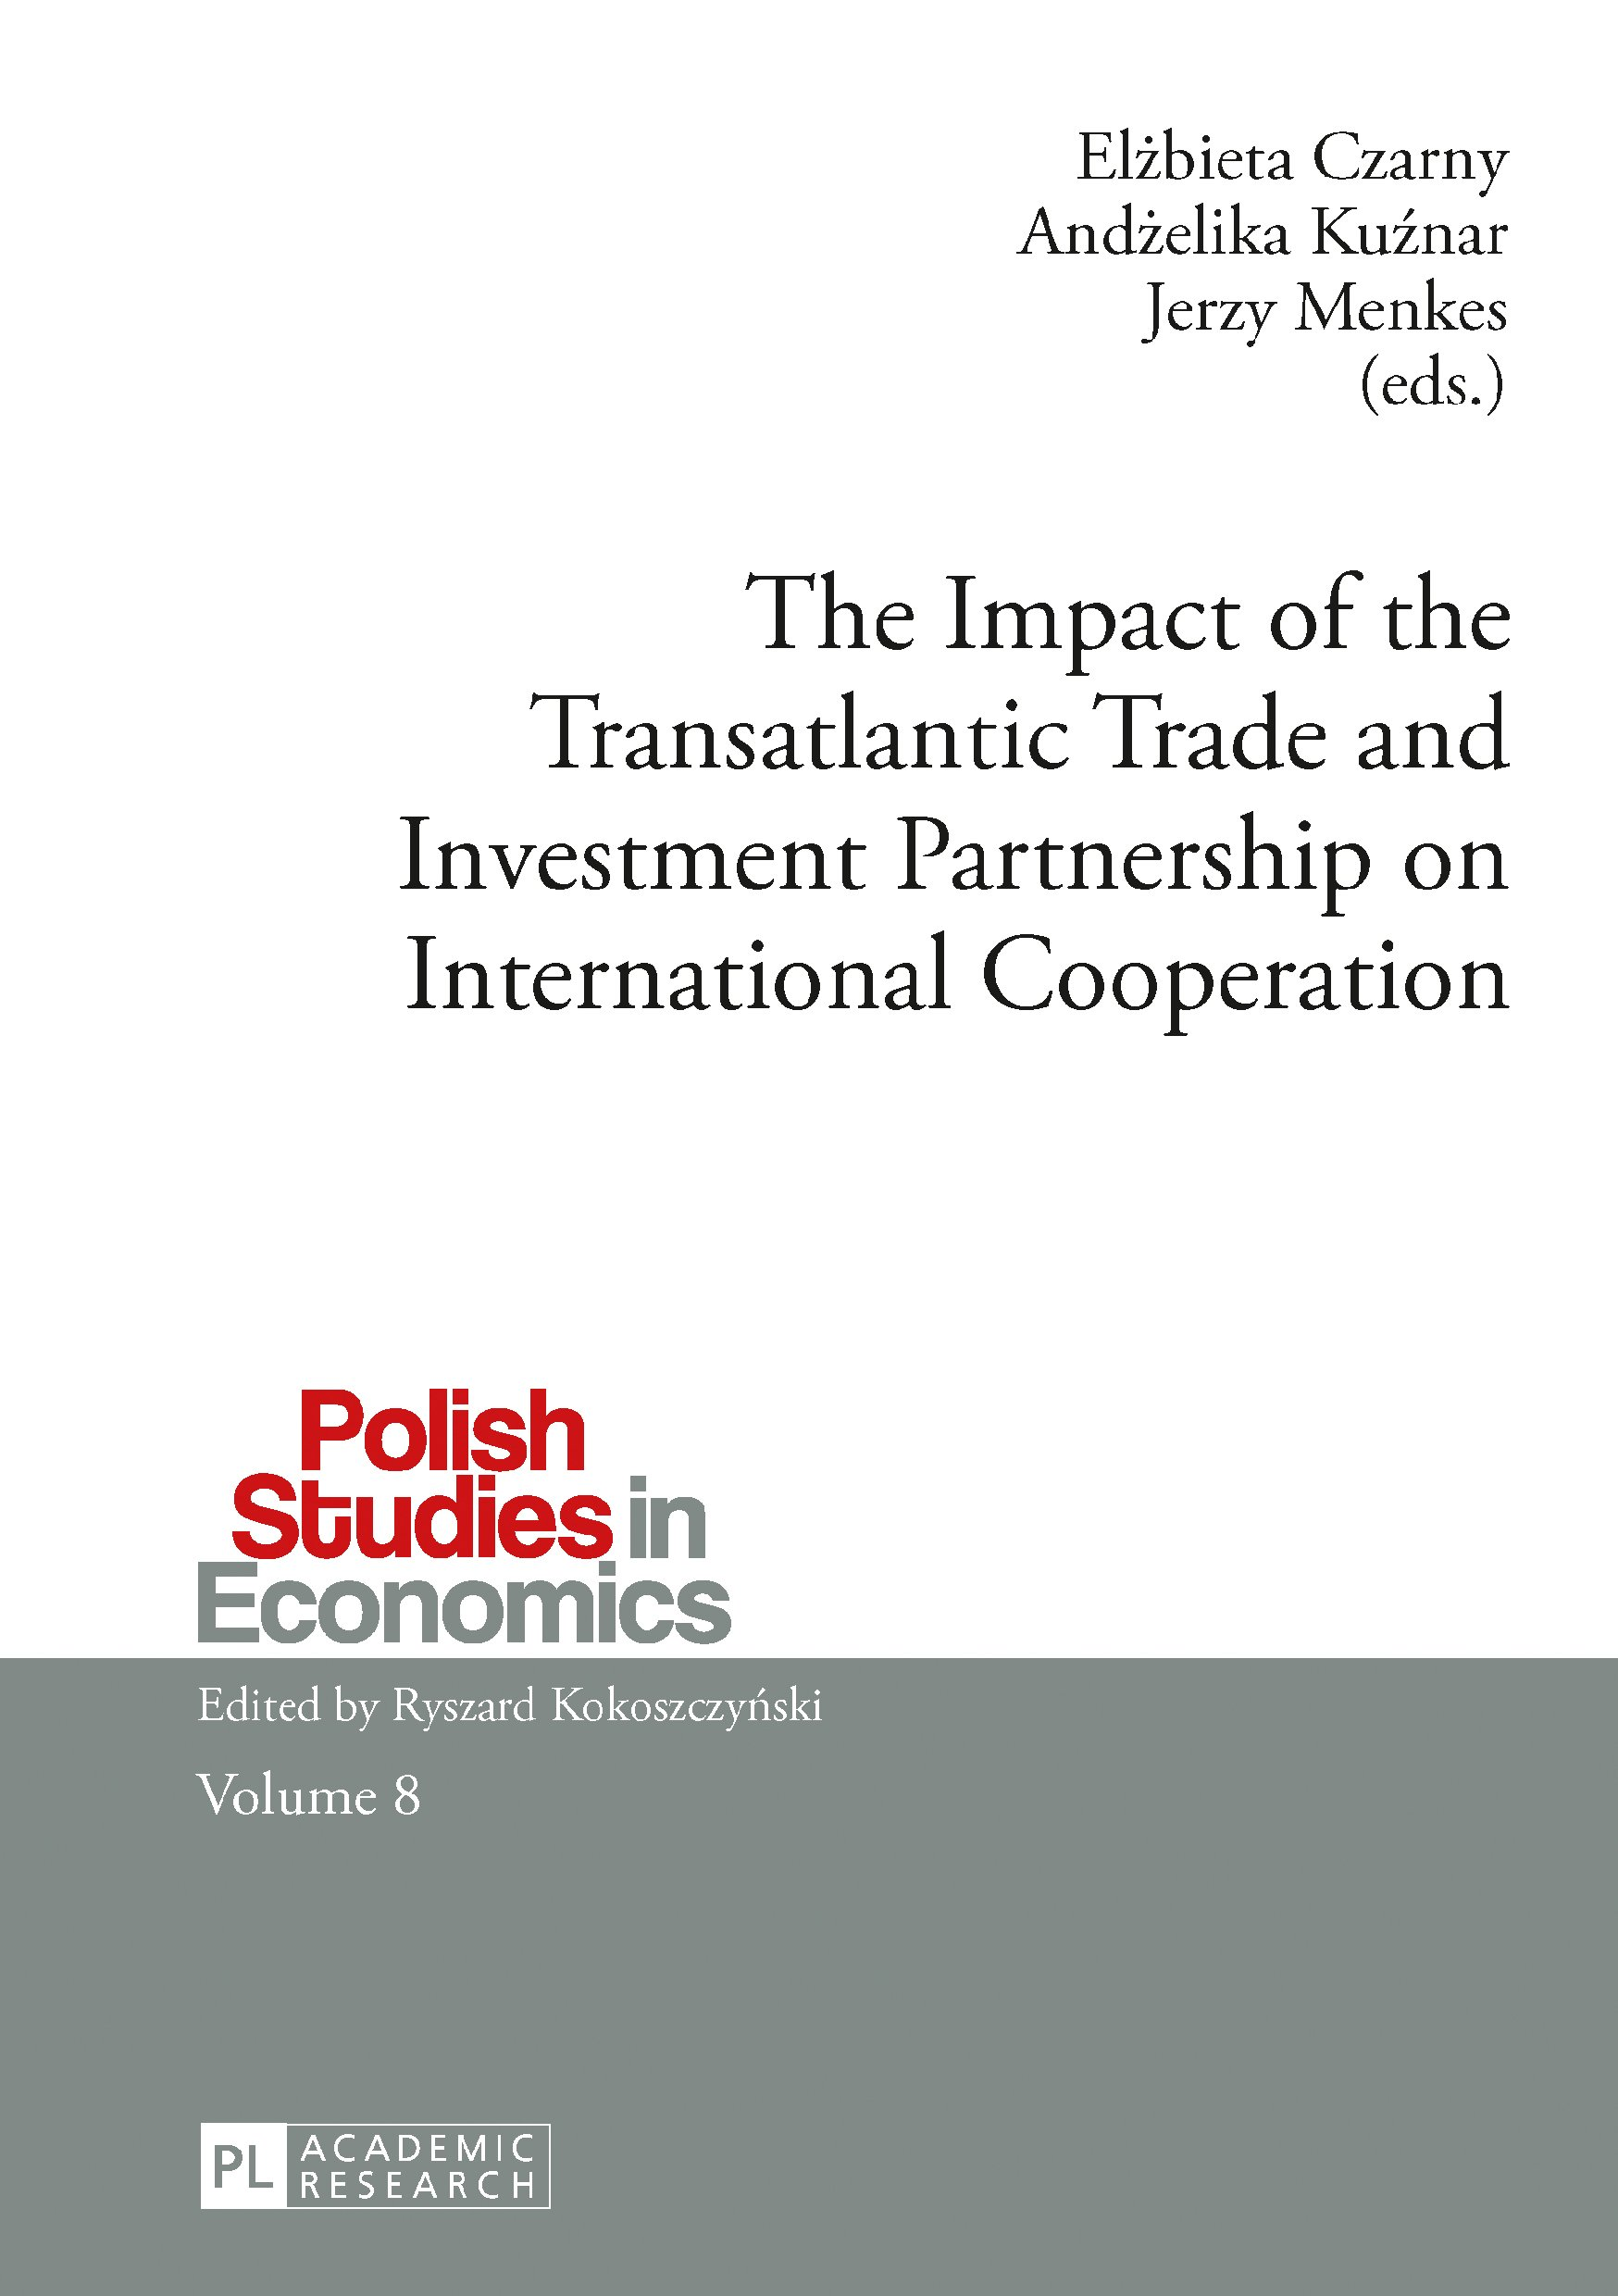 The Impact of the Transatlantic Trade and Investment Partnership on International Cooperation (Polish Studies in Economics Book 8)